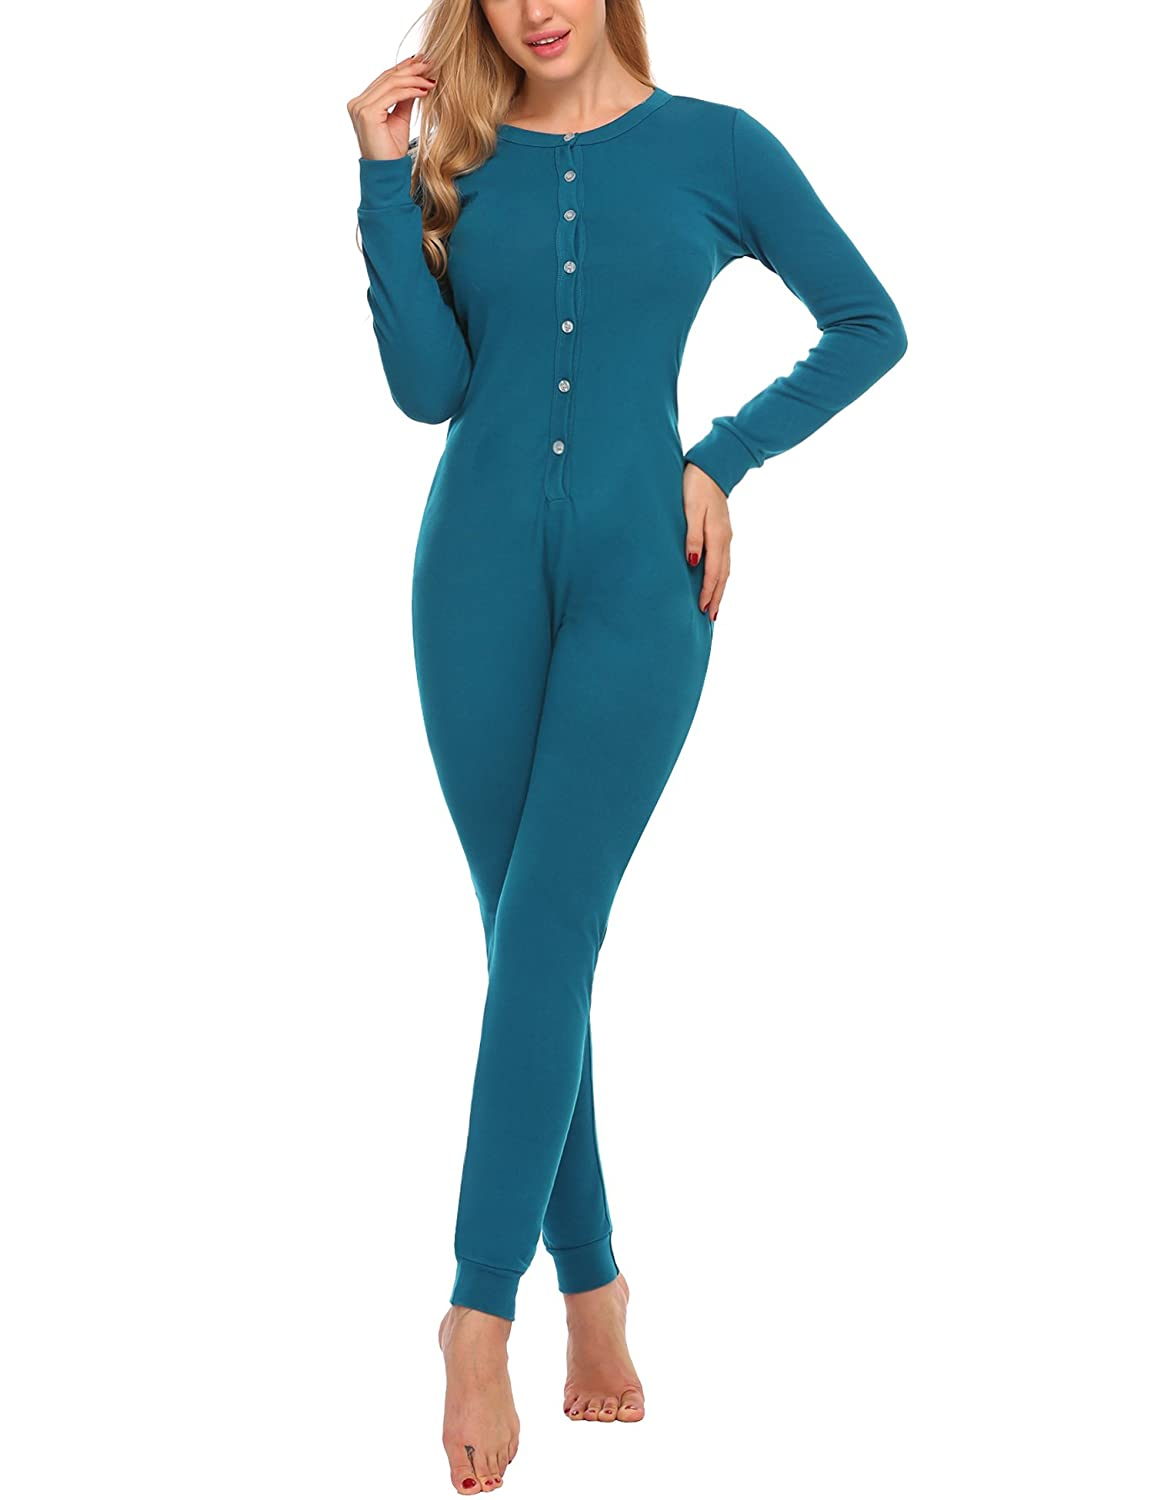 Hotouch Womens Long Sleeve Onesie Union Suit Thermal Underwear Set  Sleepwear Pajama Jumpsuit Union S-XXL at Amazon Women s Clothing store  0b44586f9